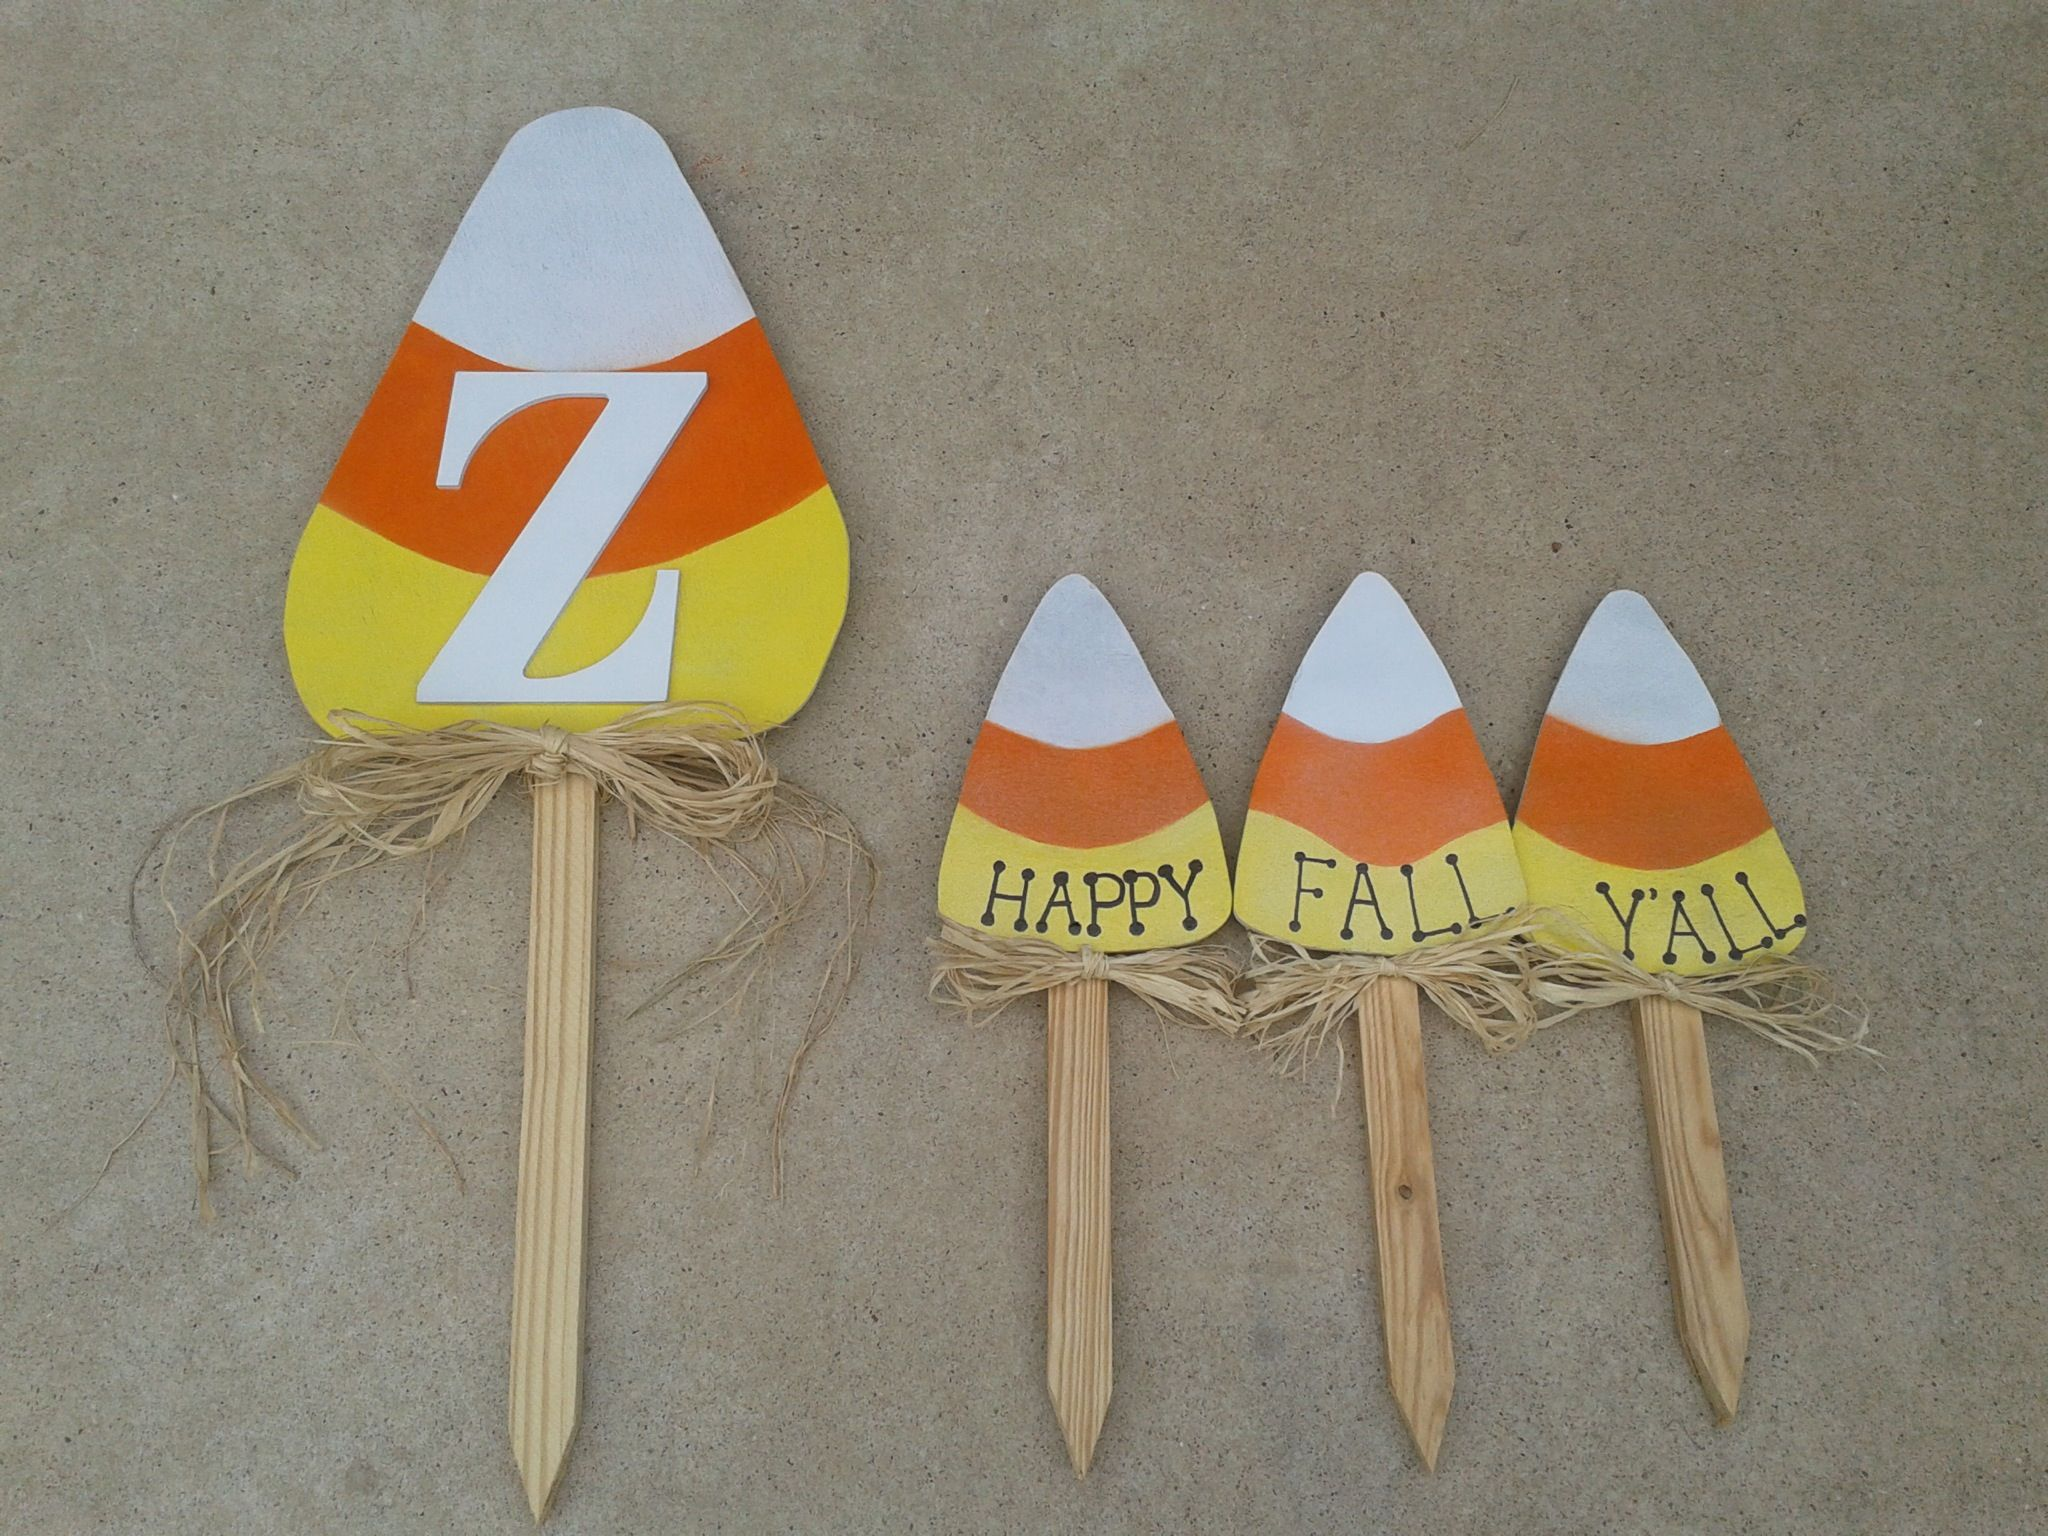 Wooden halloween yard decorations - These Are The Halloween Yard Decorations I Made I Can Also Make Christmas Yard Art